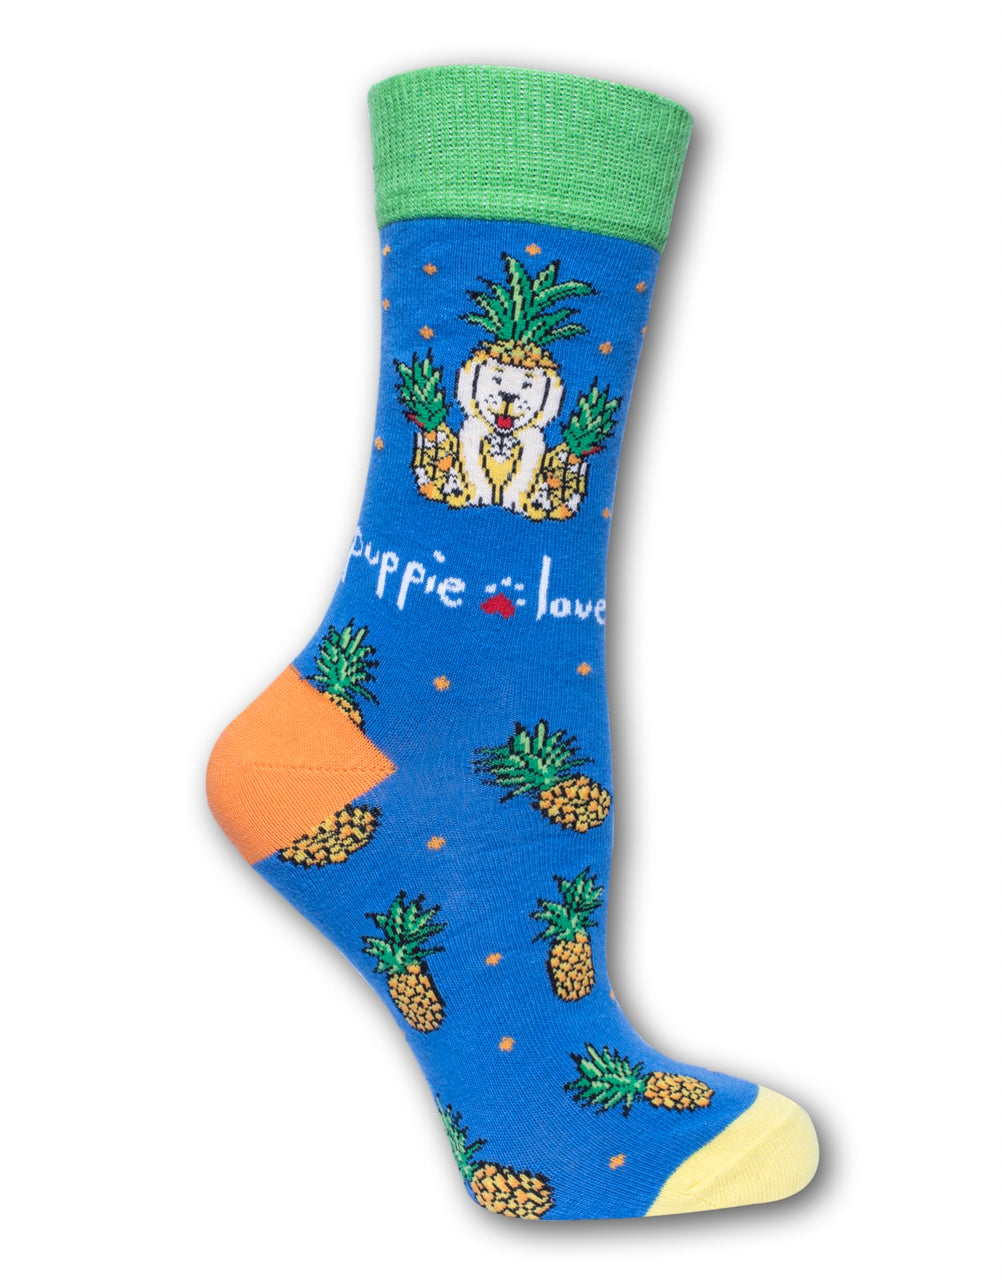 ADULT CREW SOCK, PINEAPPLE DISGUISE PUP - Puppie Love